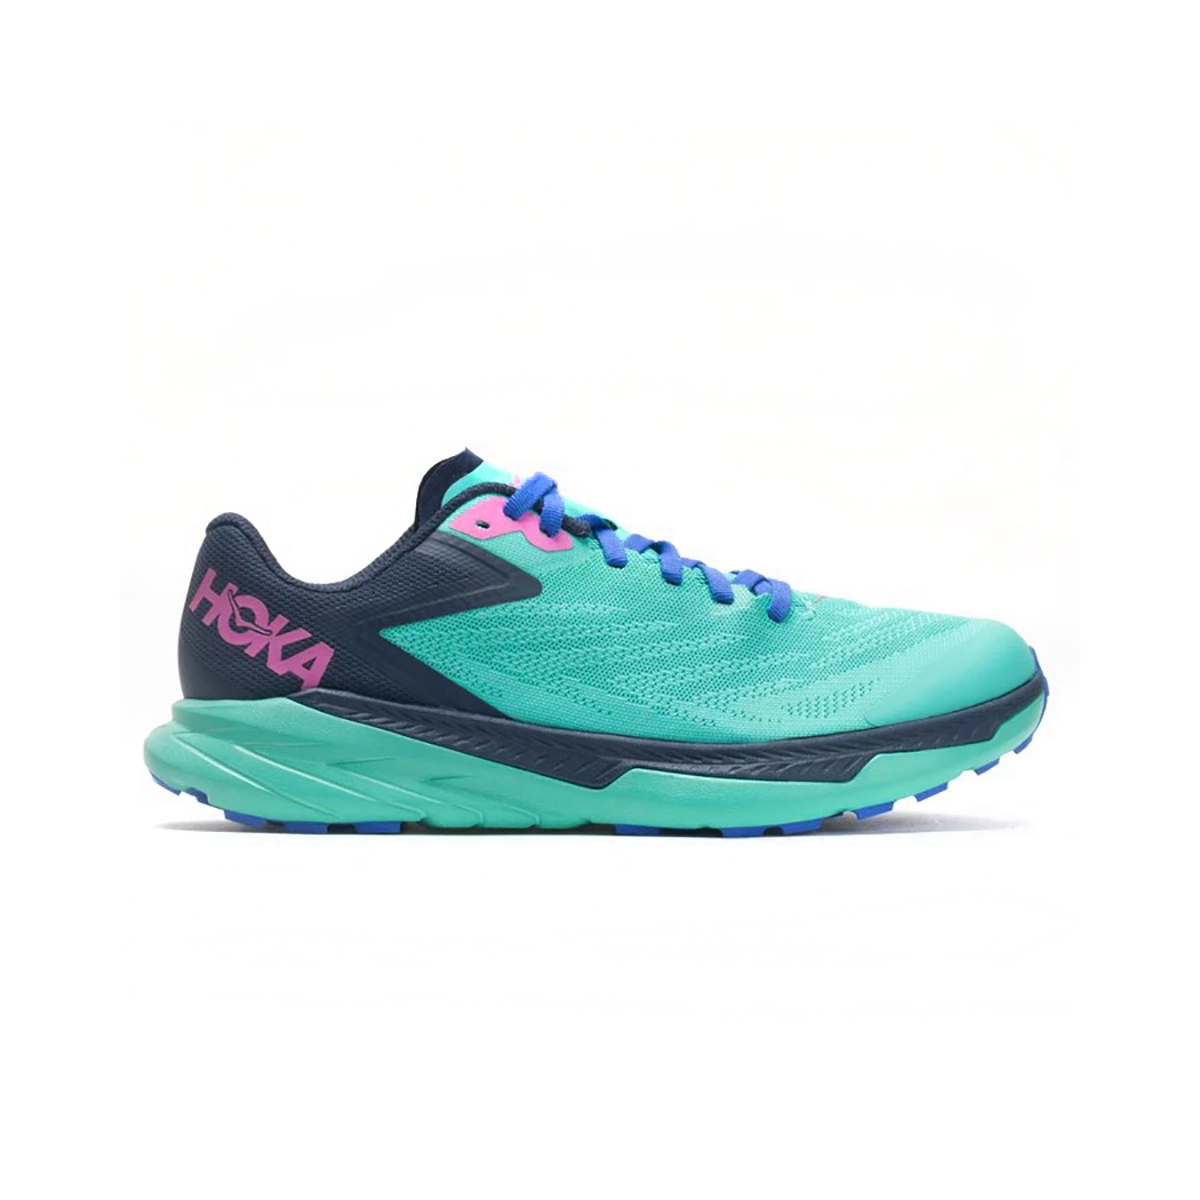 Women's Hoka One One Zinal Trail Running Shoe - Color: Atlantis / Outer Space - Size: 5 - Width: Regular, Atlantis / Outer Space, large, image 1